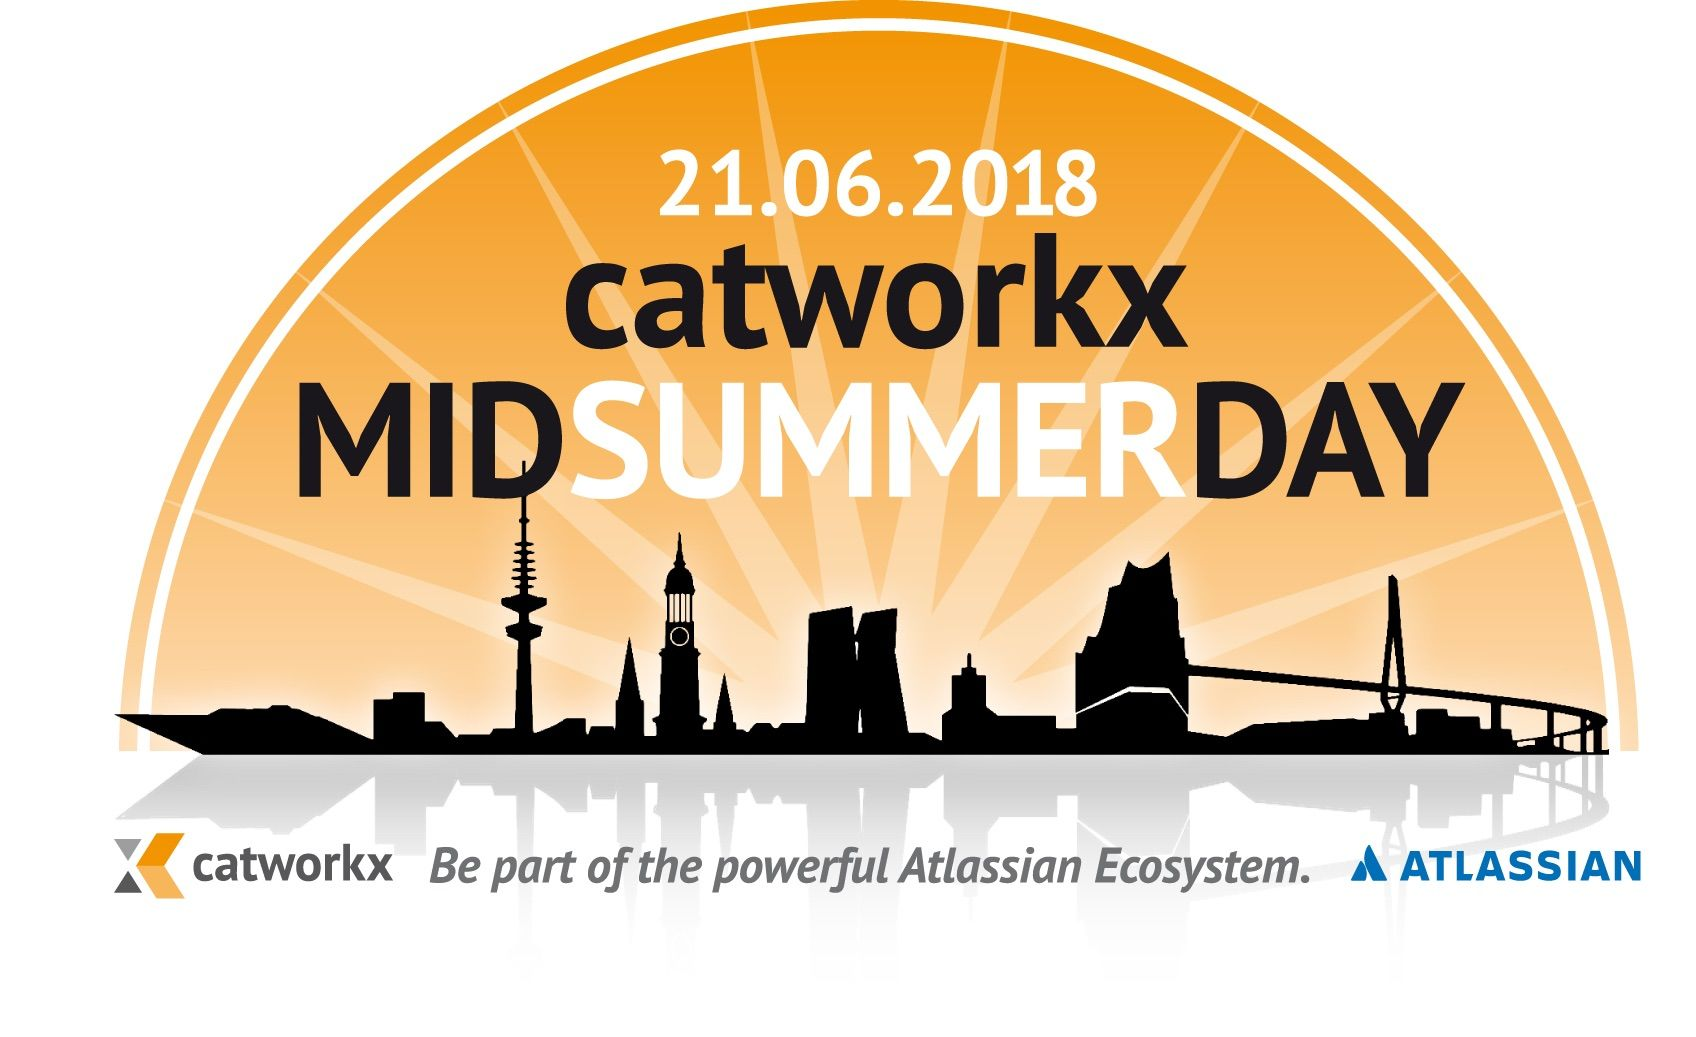 catworkx Midsummer Day 2018